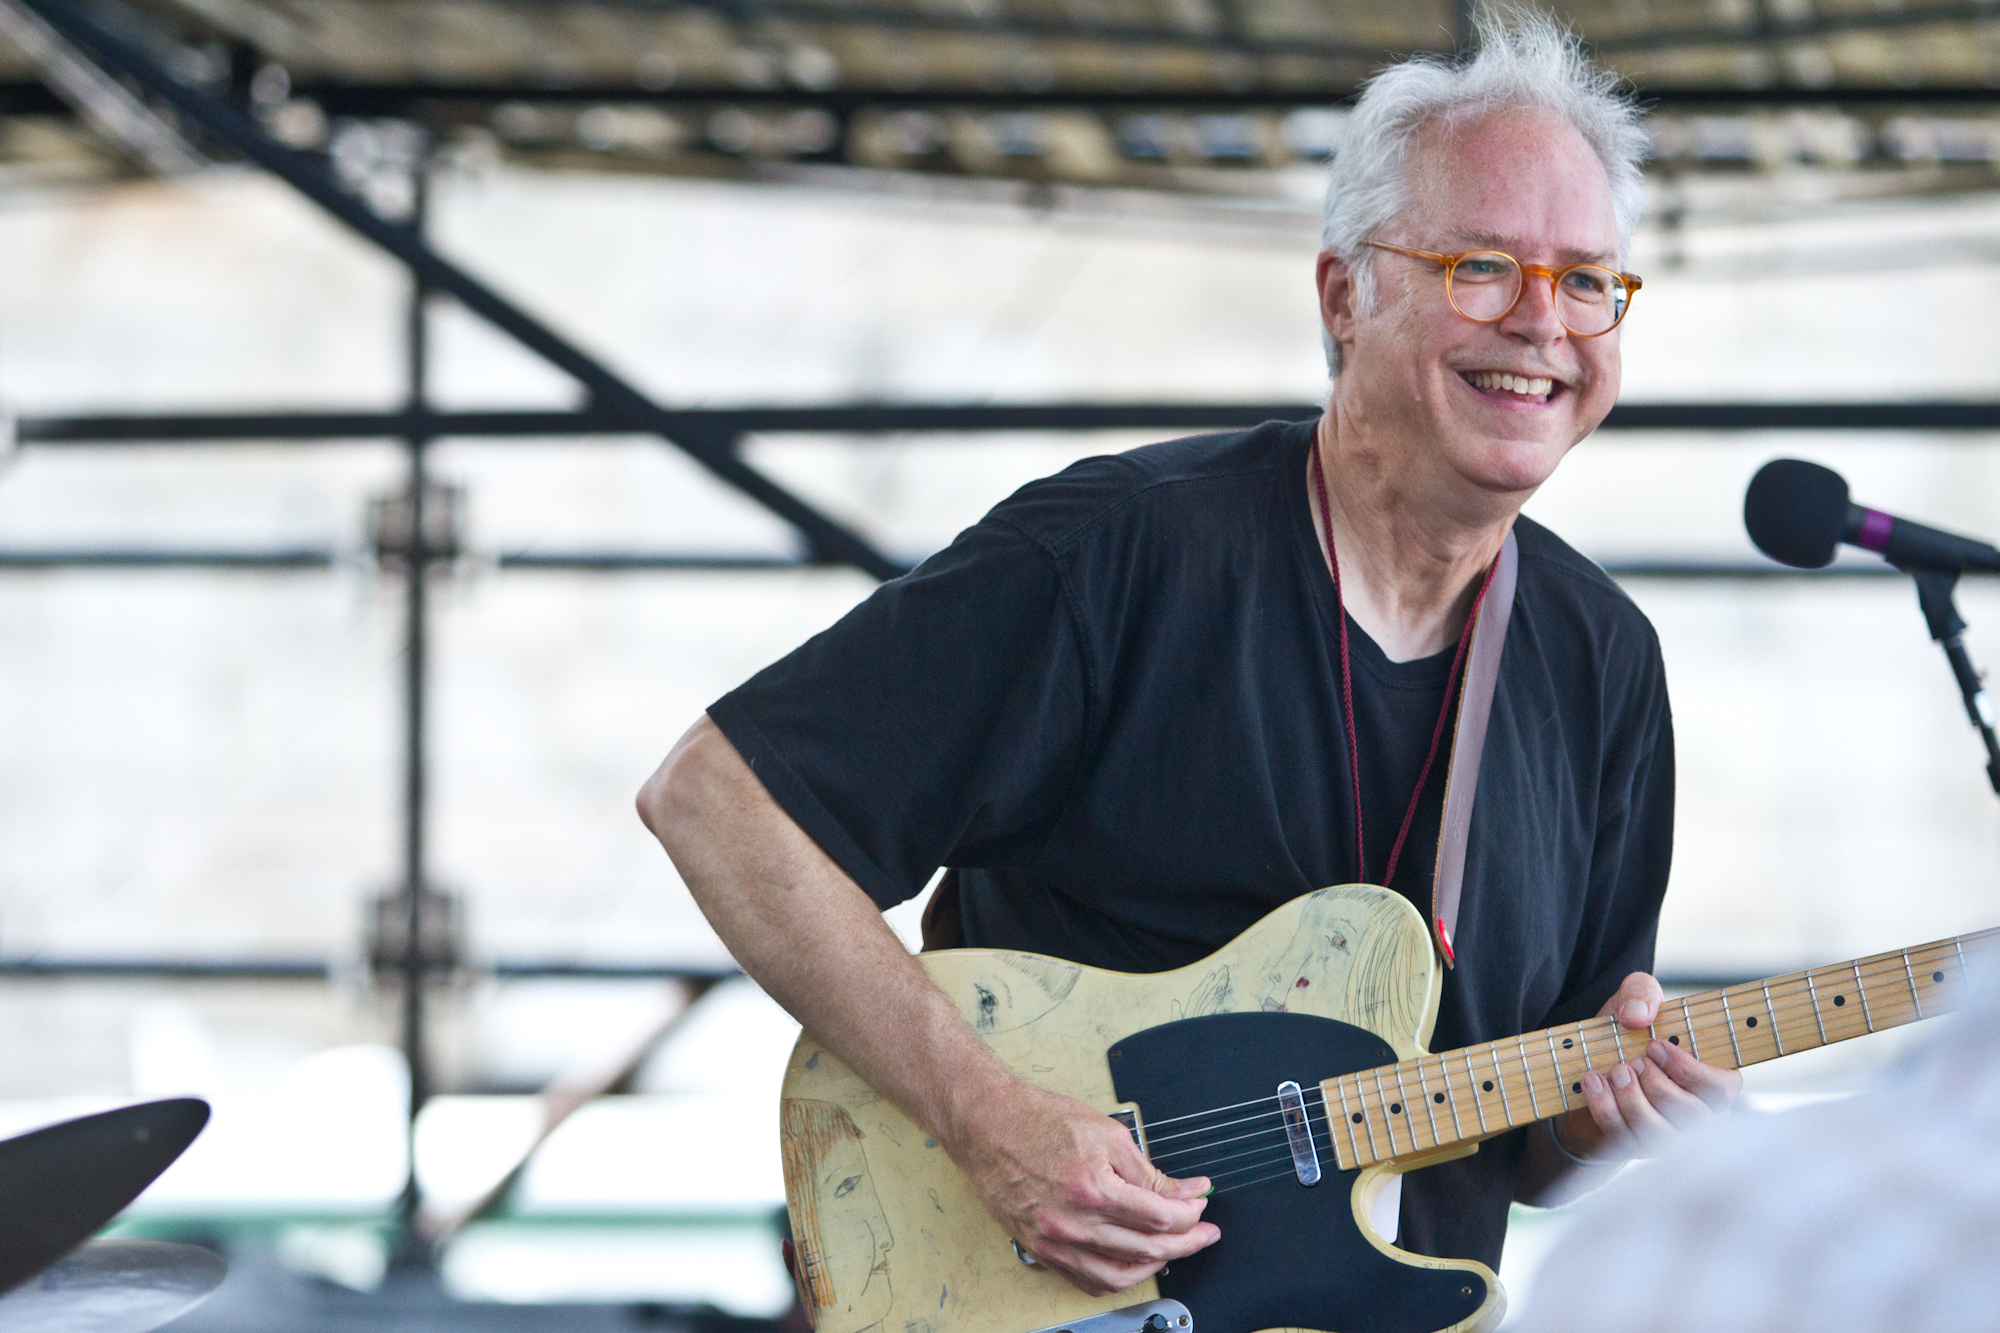 Guitarist Bill Frisell was all smiles during his set of John Lennon interpretations.